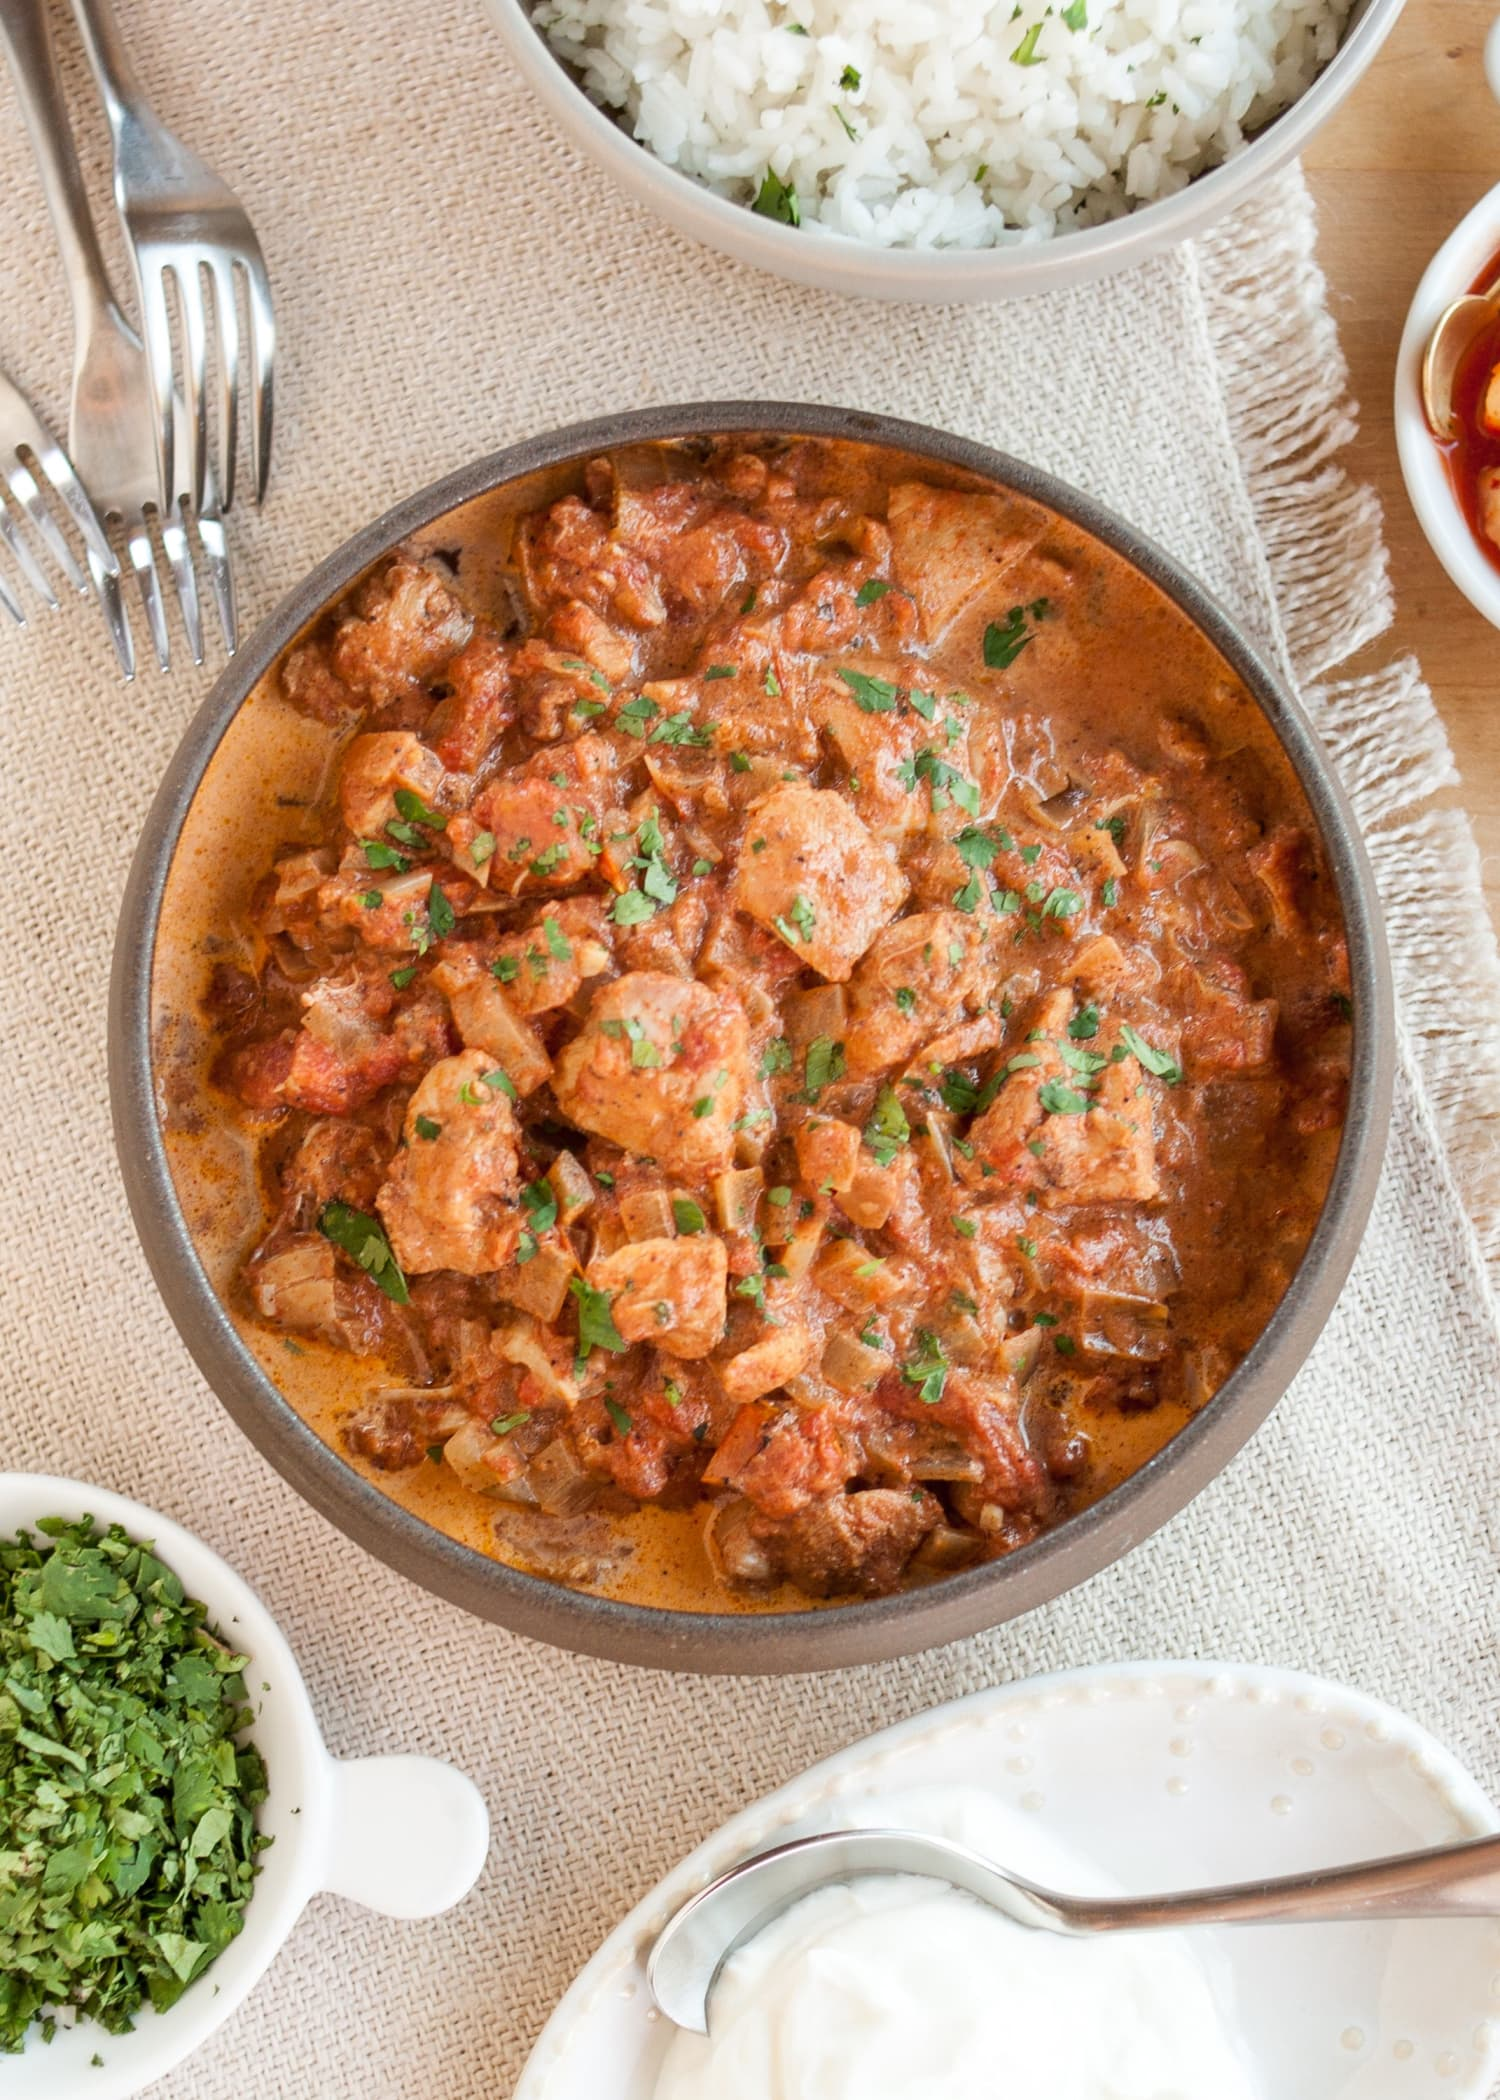 Our 10 Most Popular Slow Cooker Recipes of All Time